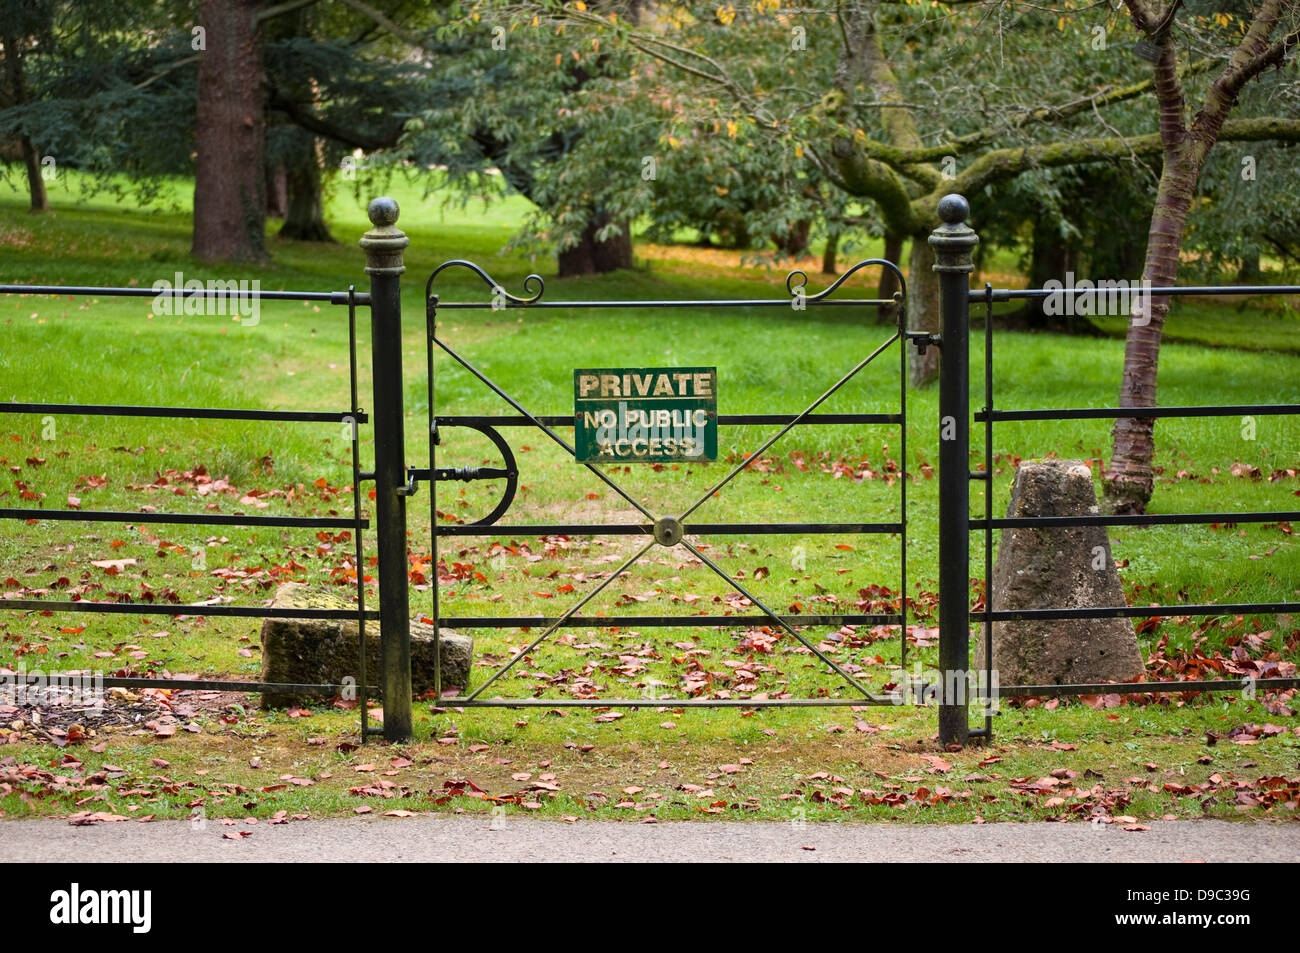 Metal Gate with fence and 'Private No Public Access' notice. - Stock Image